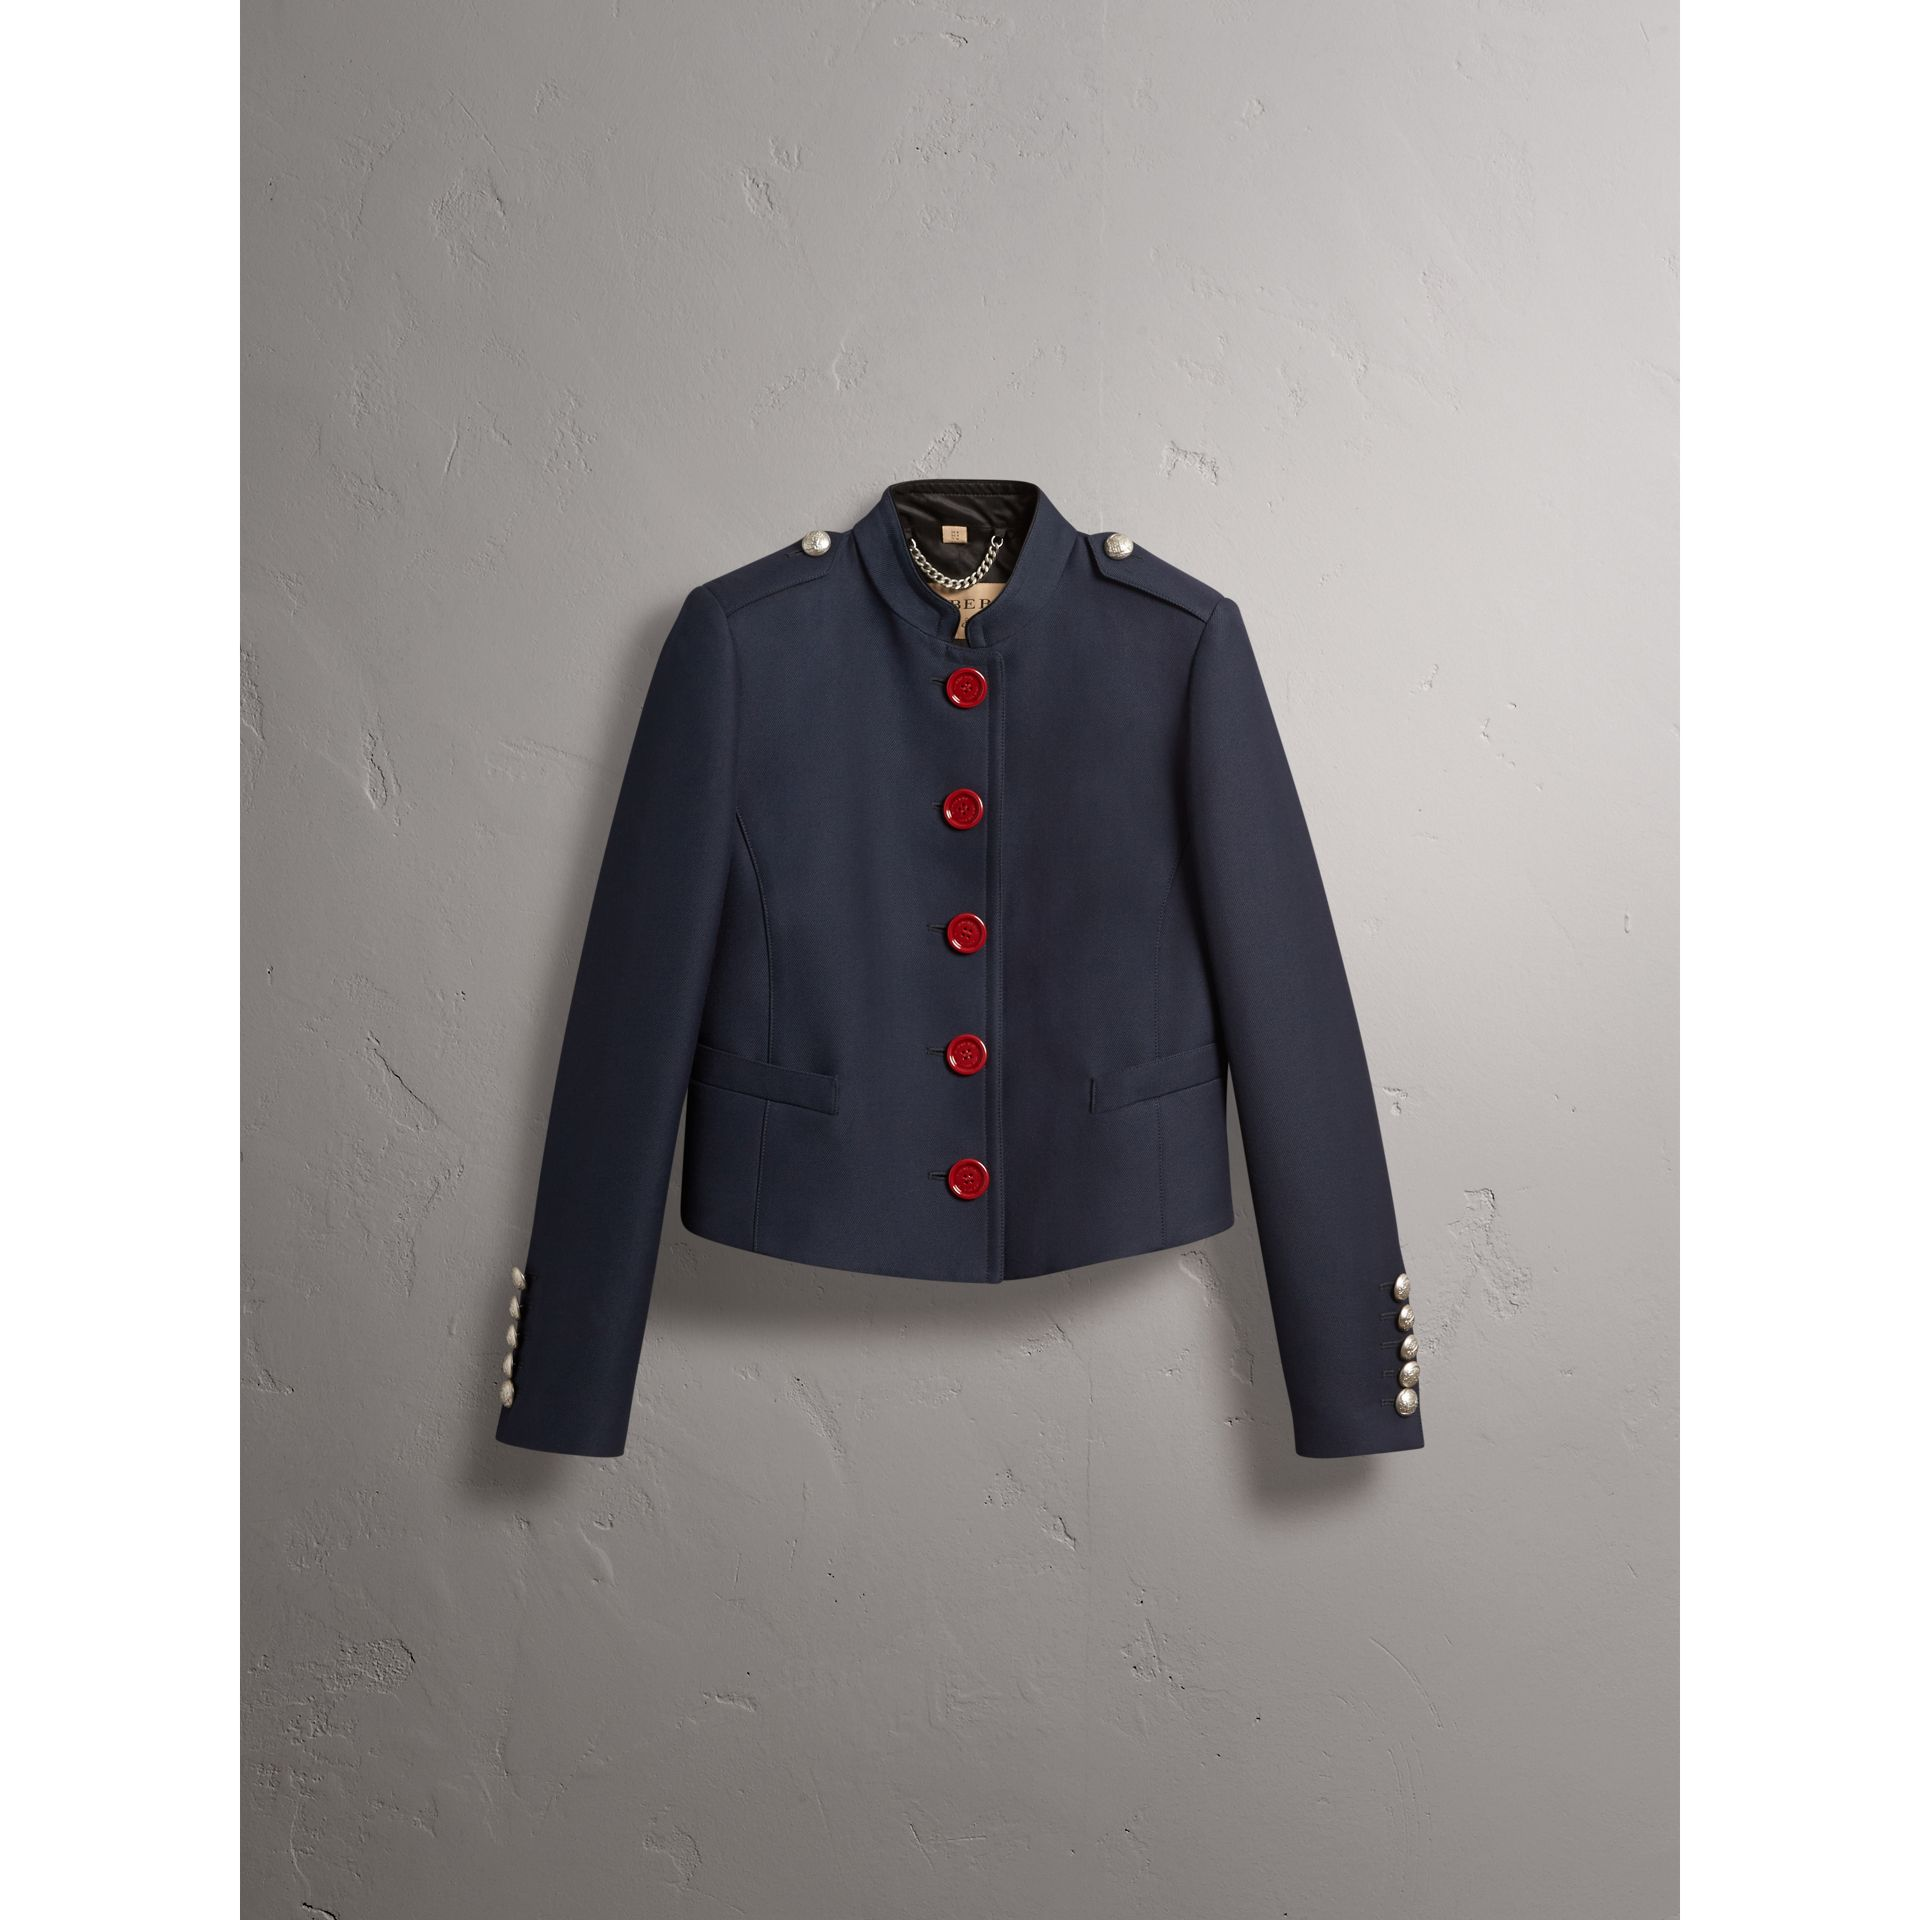 Resin Button Wool Cotton Blend Jacket in Ink Blue - Women | Burberry - gallery image 4